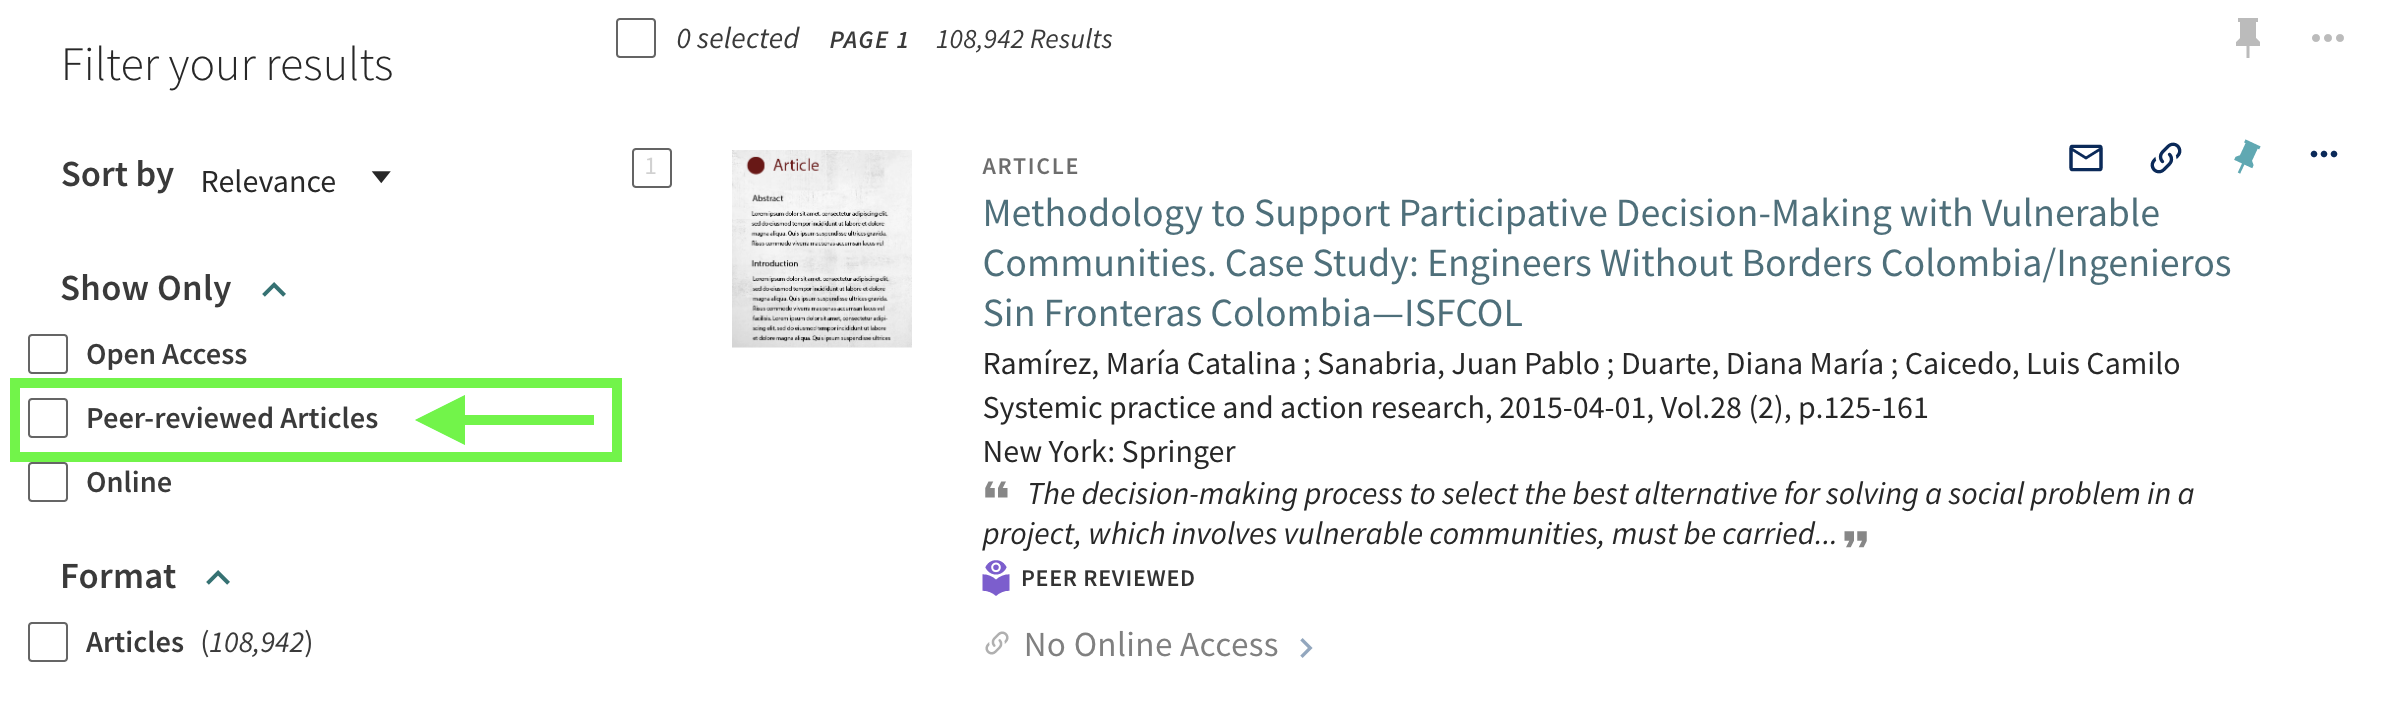 Results page with arrow pointing to peer-reviewed articles filter.